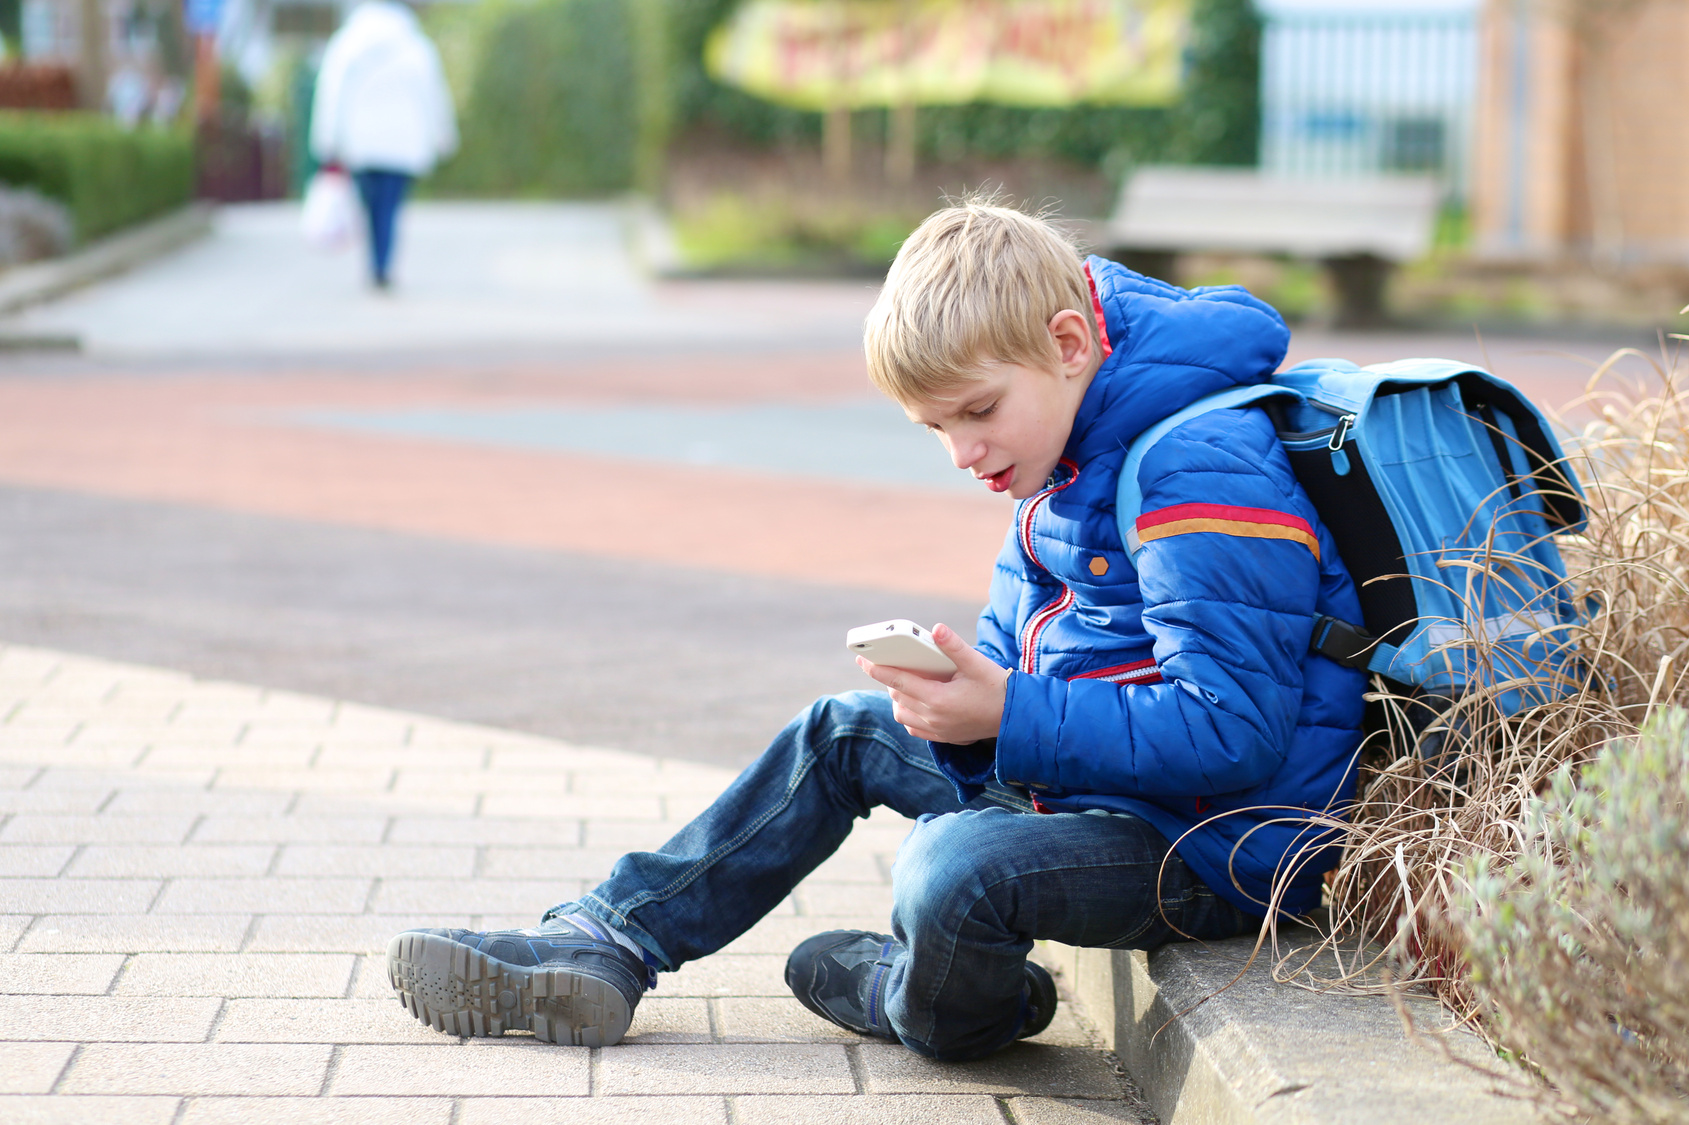 Teenager boy calling on mobile phone sitting outside of school